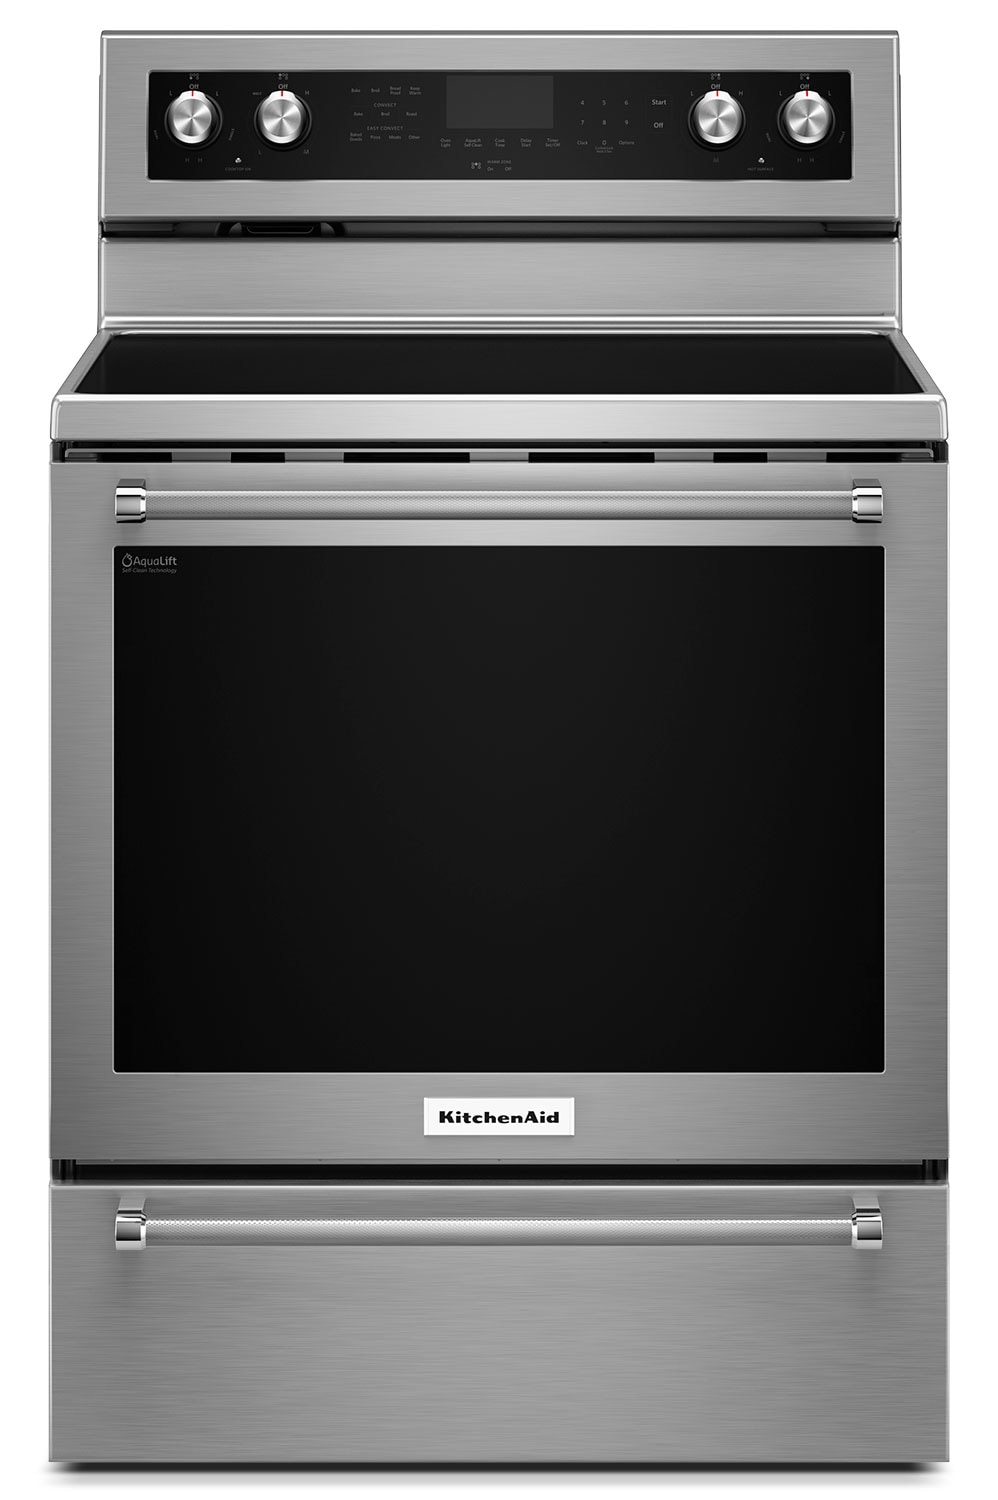 [KitchenAid Stainless Steel Freestanding Electric Convection Range (6.4 Cu. Ft.) - YKFEG510ESS]